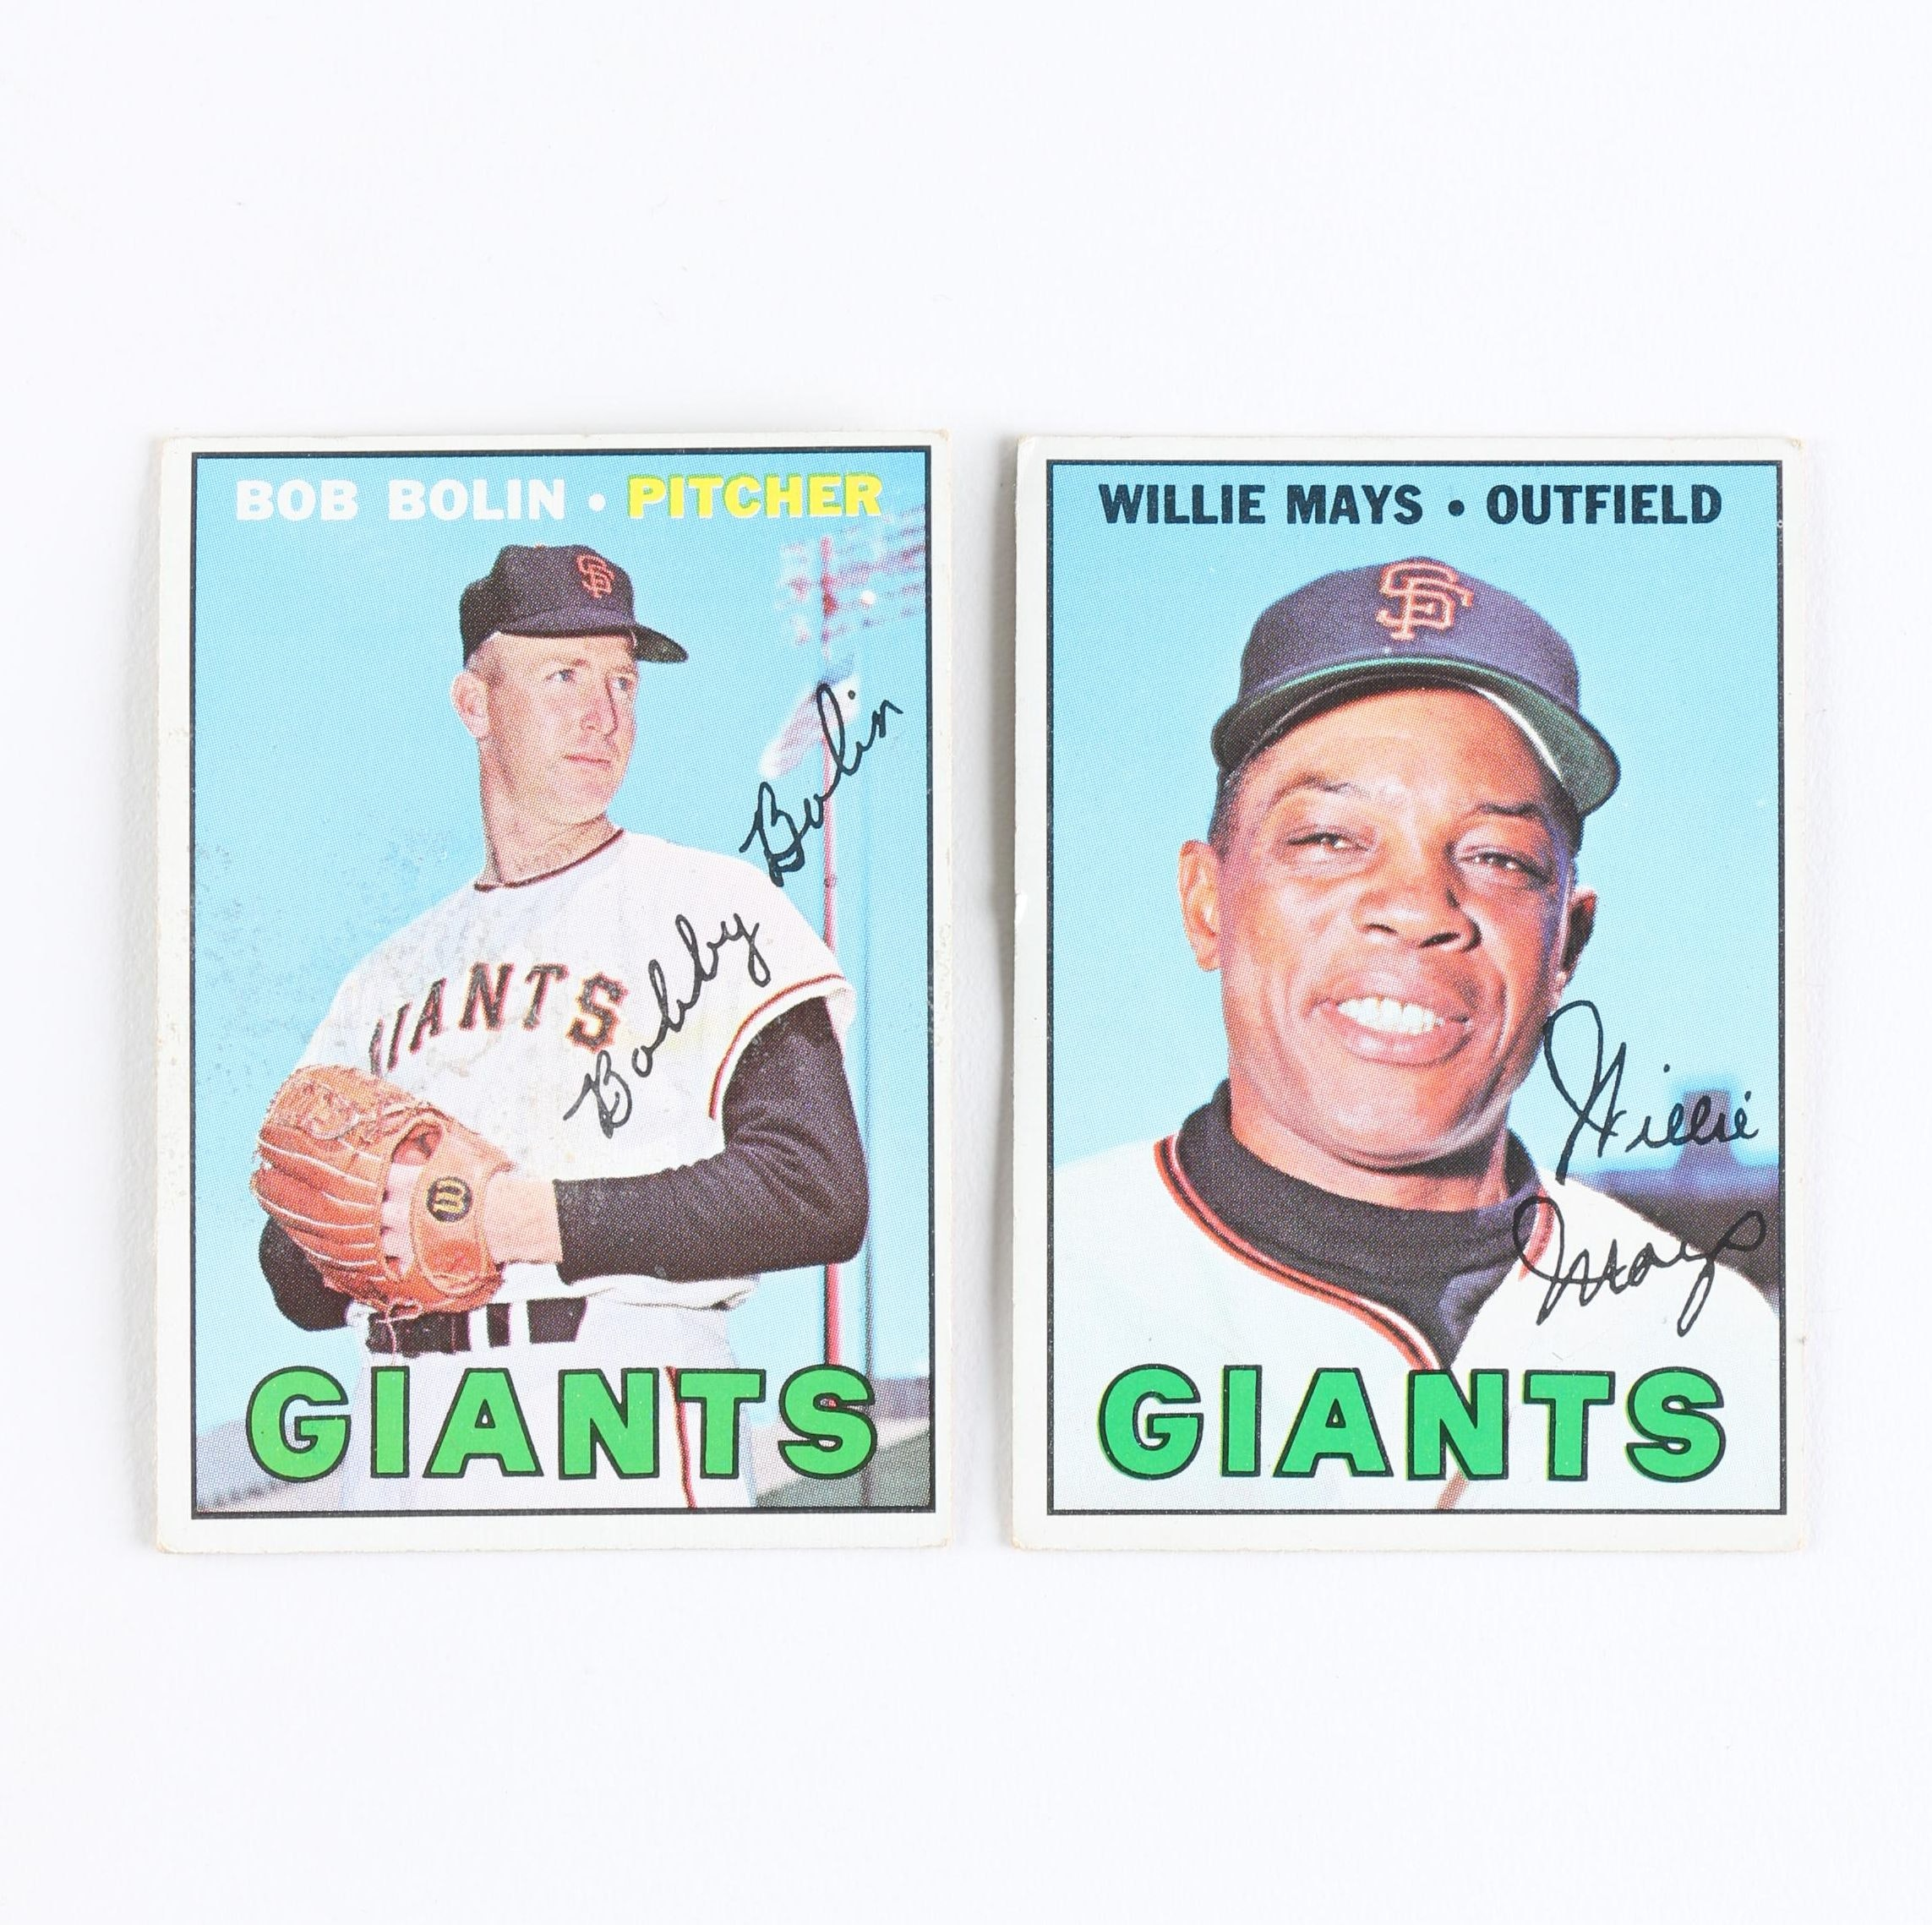 1962 Topps Giants Willie Mays and Bob Bolin Cards